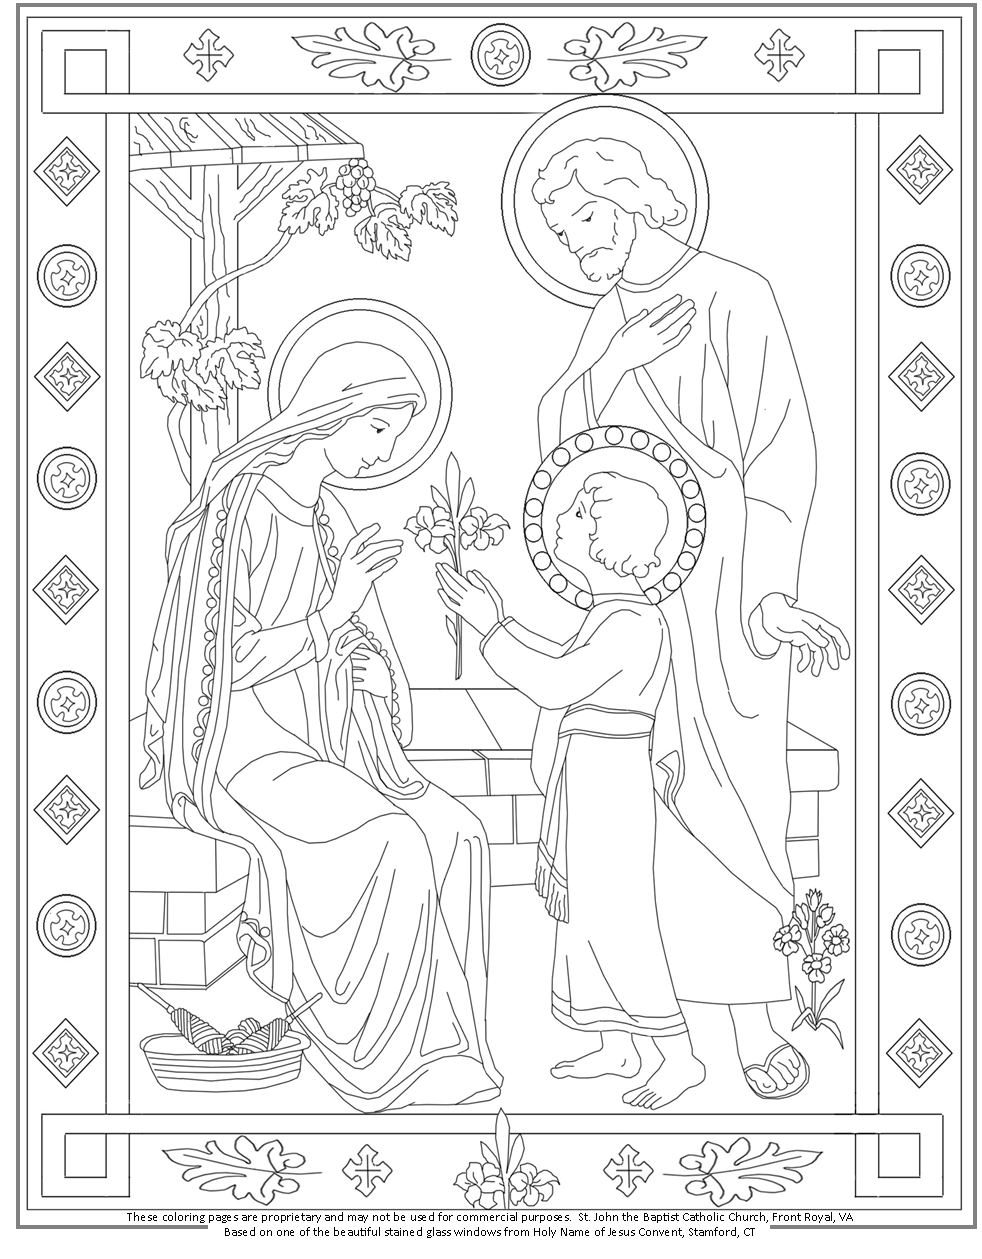 coloring pages religious education - photo#13